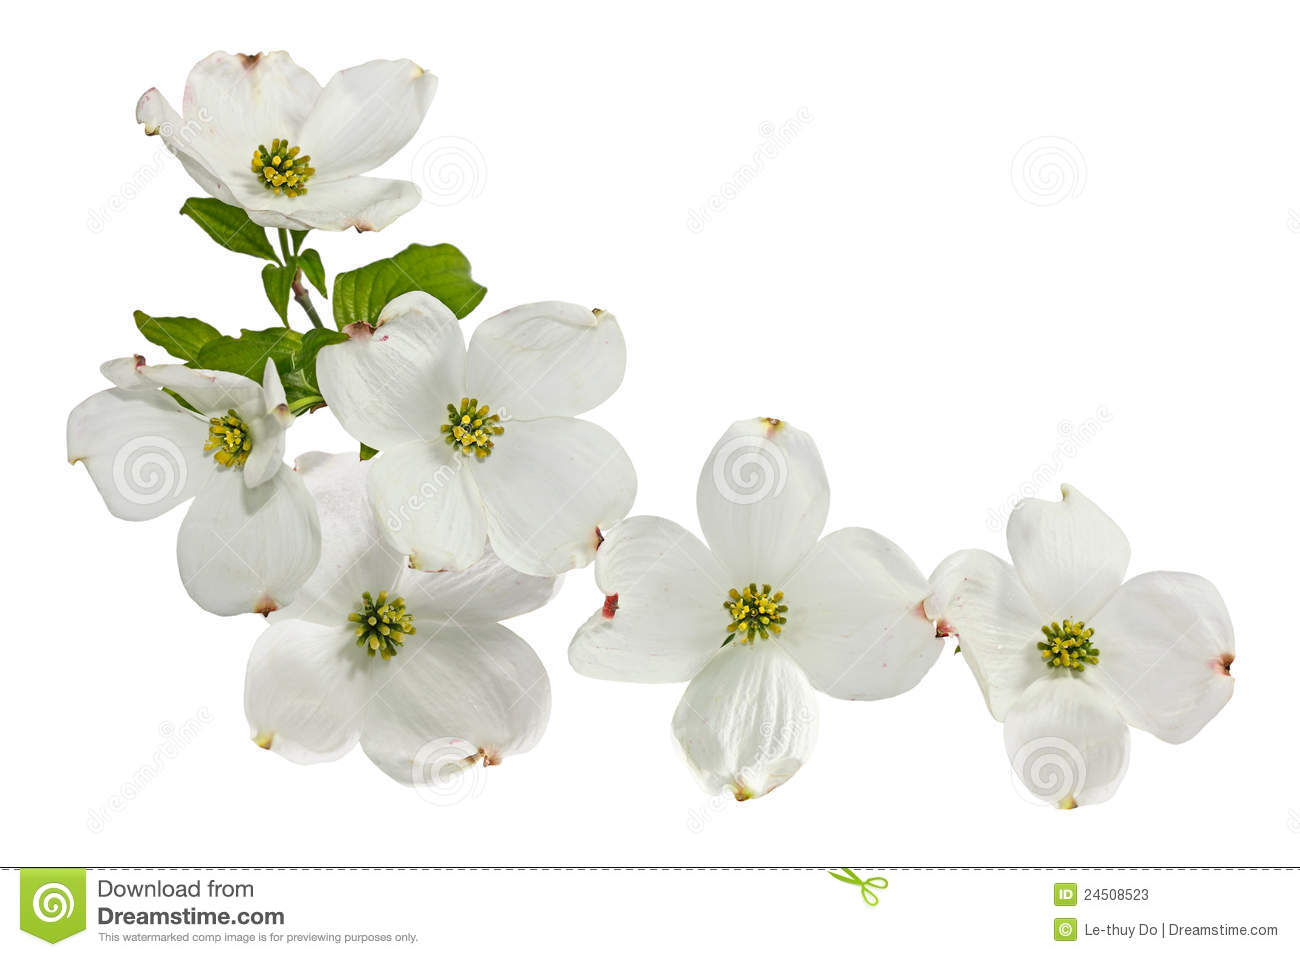 Pickin Me A Bouquet Of Dogwood Flowers Images - Flower Wallpaper HD